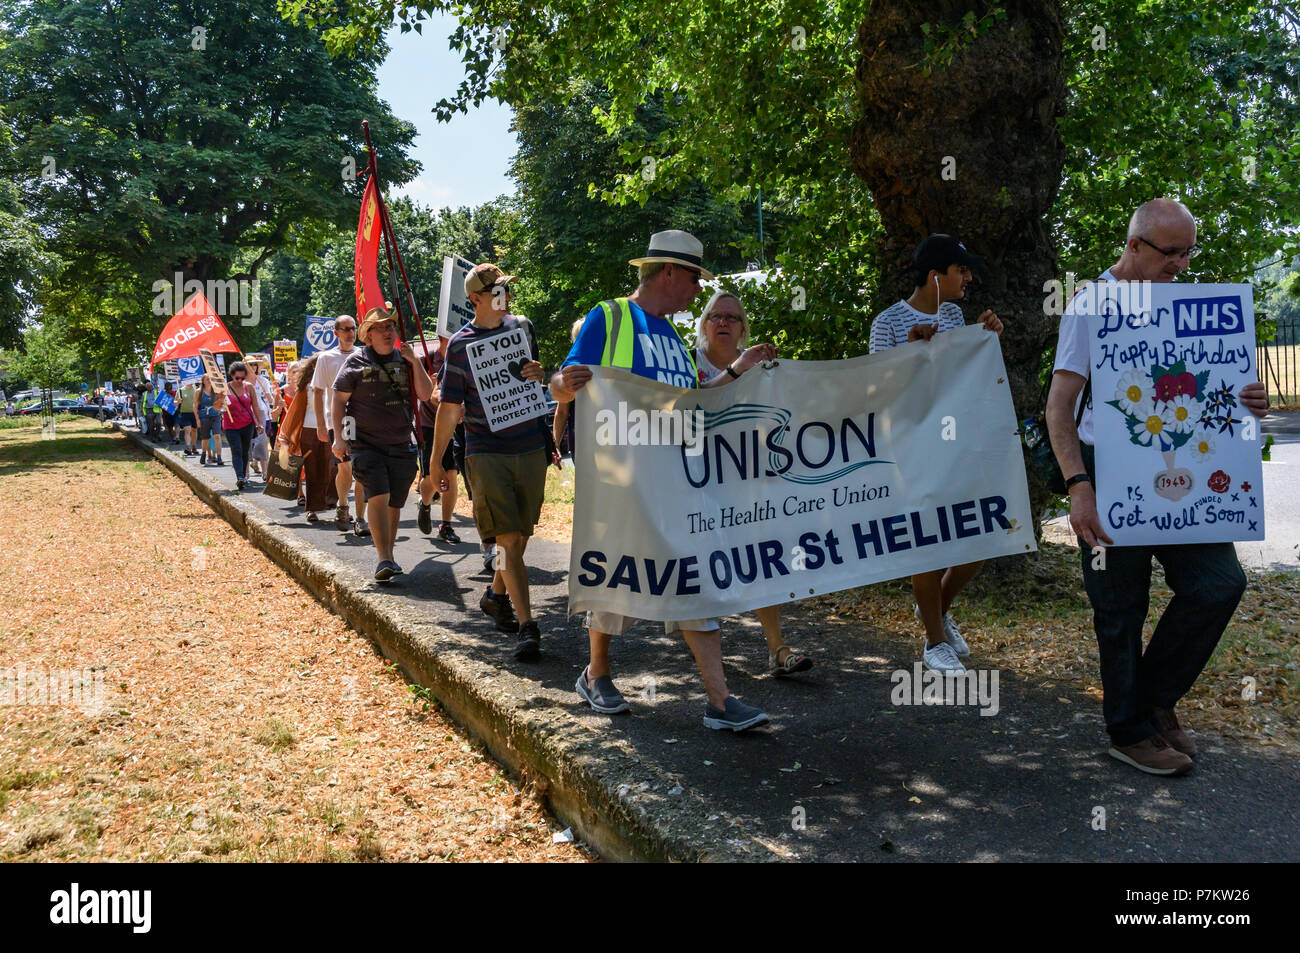 London, UK. 7th July 2018. Keep Our St Helier Hospital (KOSHH) campaigners against the closure of acute facilities at Epsom and St Helier Hospitals in south London celebrate the 70th Birthday of the NHS with a march from Sutton to a rally in front of St Helier Hospital.   he of sou Credit: Peter Marshall/Alamy Live News - Stock Image